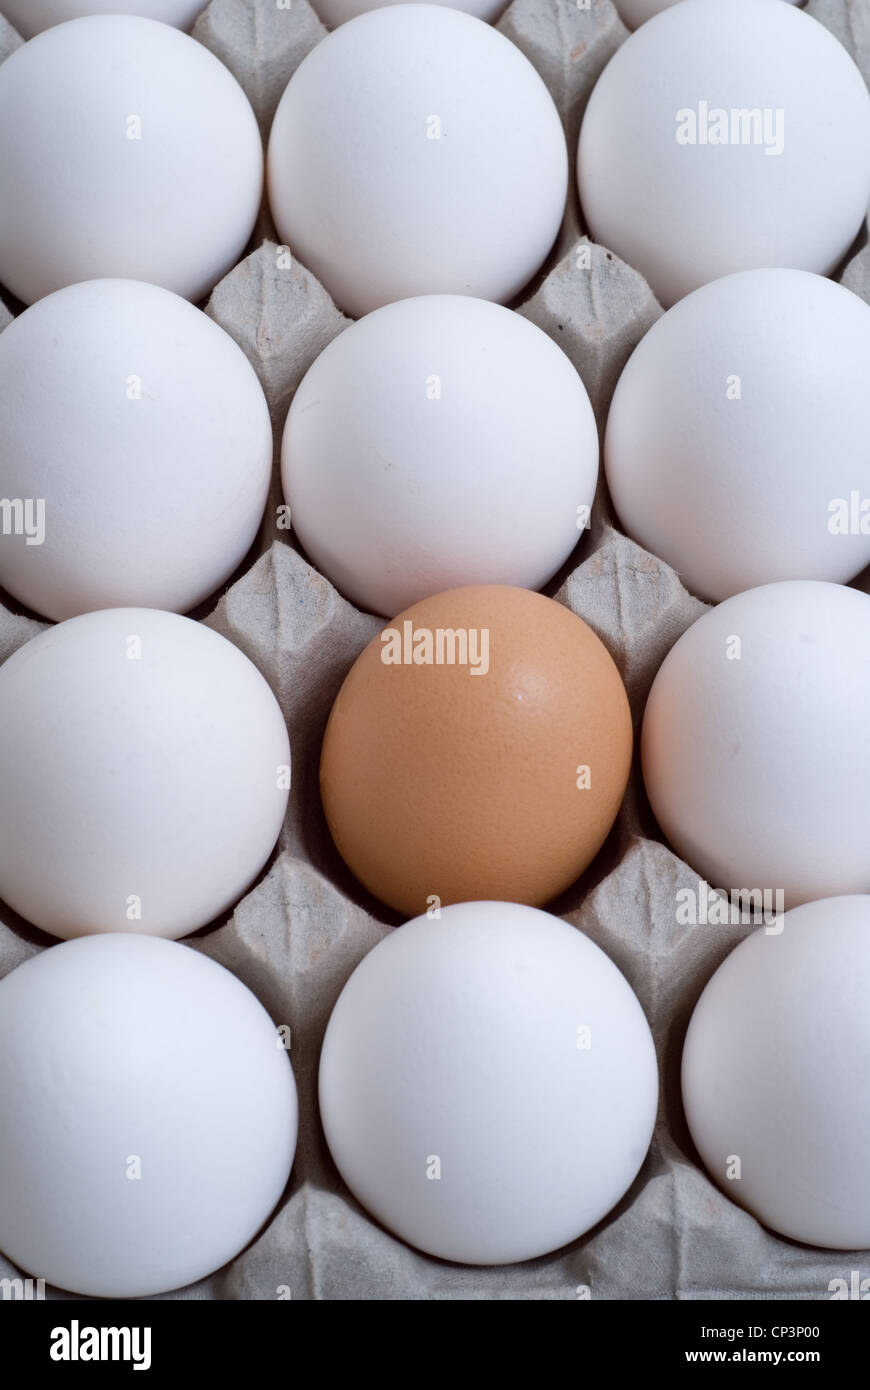 Les œufs blancs avec un brown egg, images conceptuelles. Photo Stock